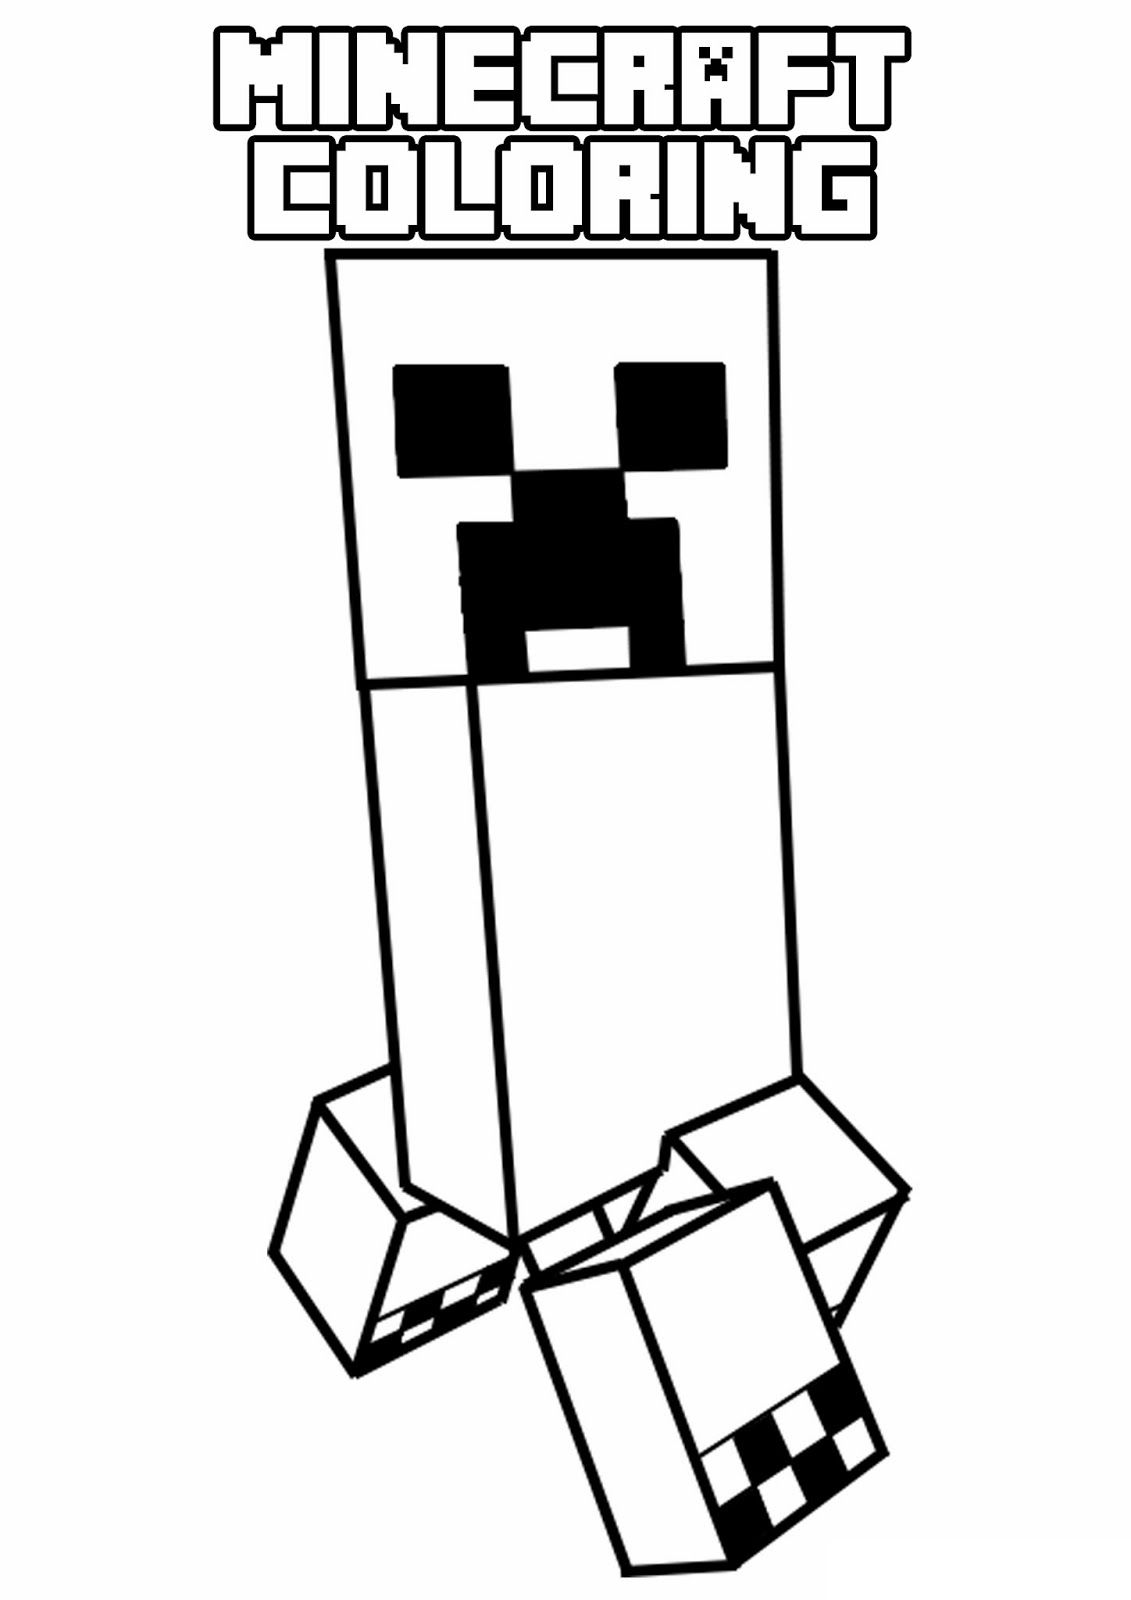 Minecraft Coloring Pages For 2019 Http Www Wallpaperartdesignhd Us Minecraft Coloring Pa Minecraft Coloring Pages Minecraft Printables Monster Coloring Pages